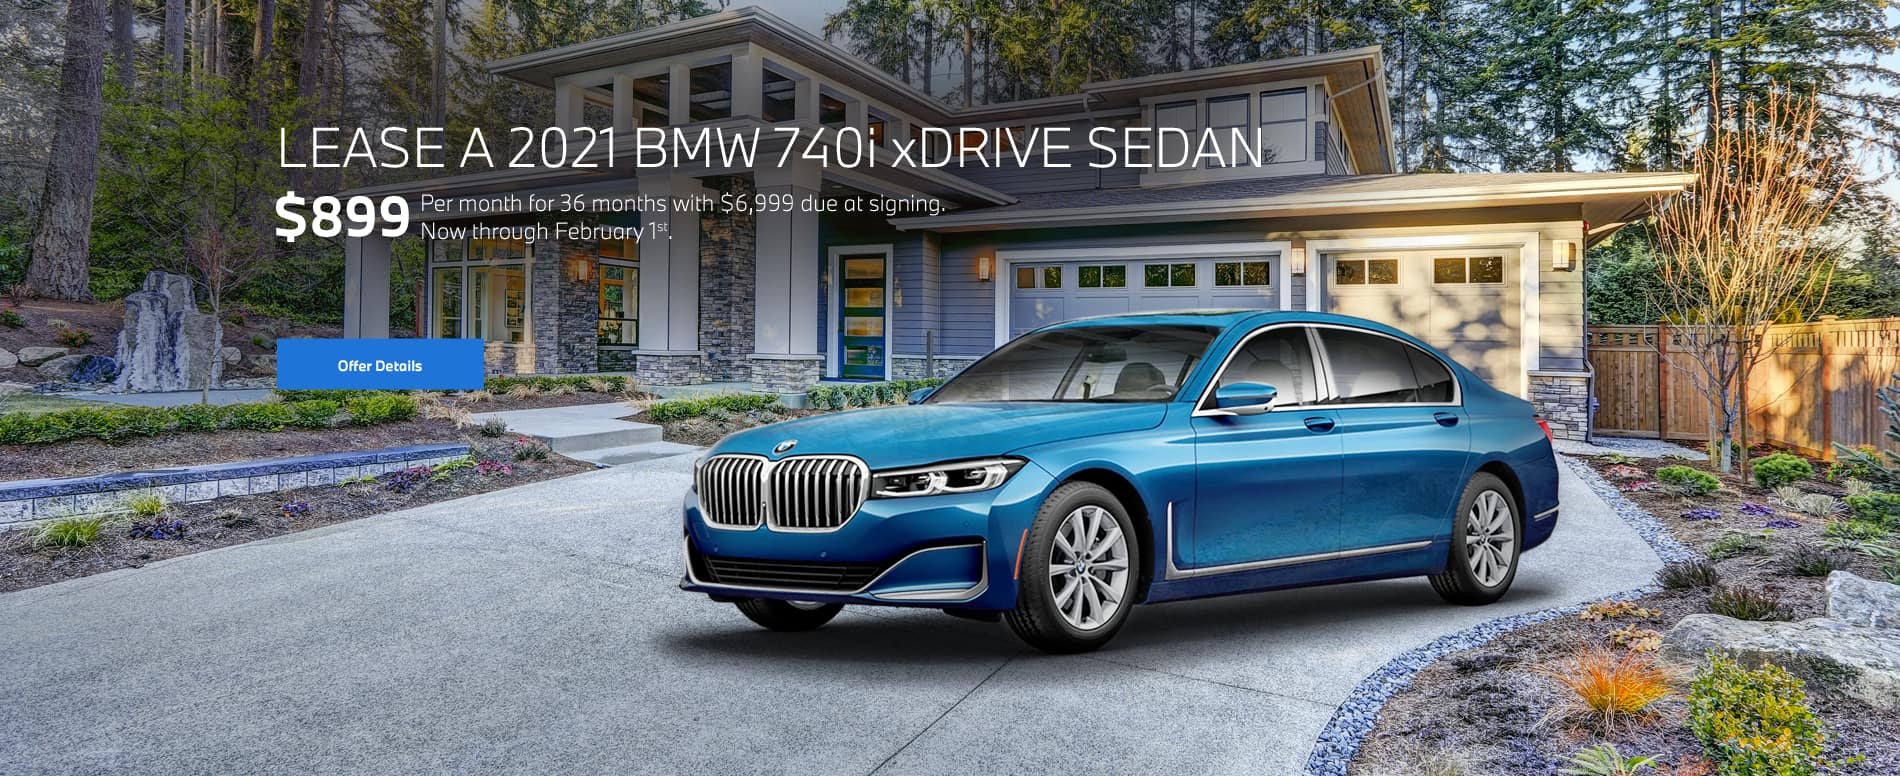 Blue 7 series parked in driveway